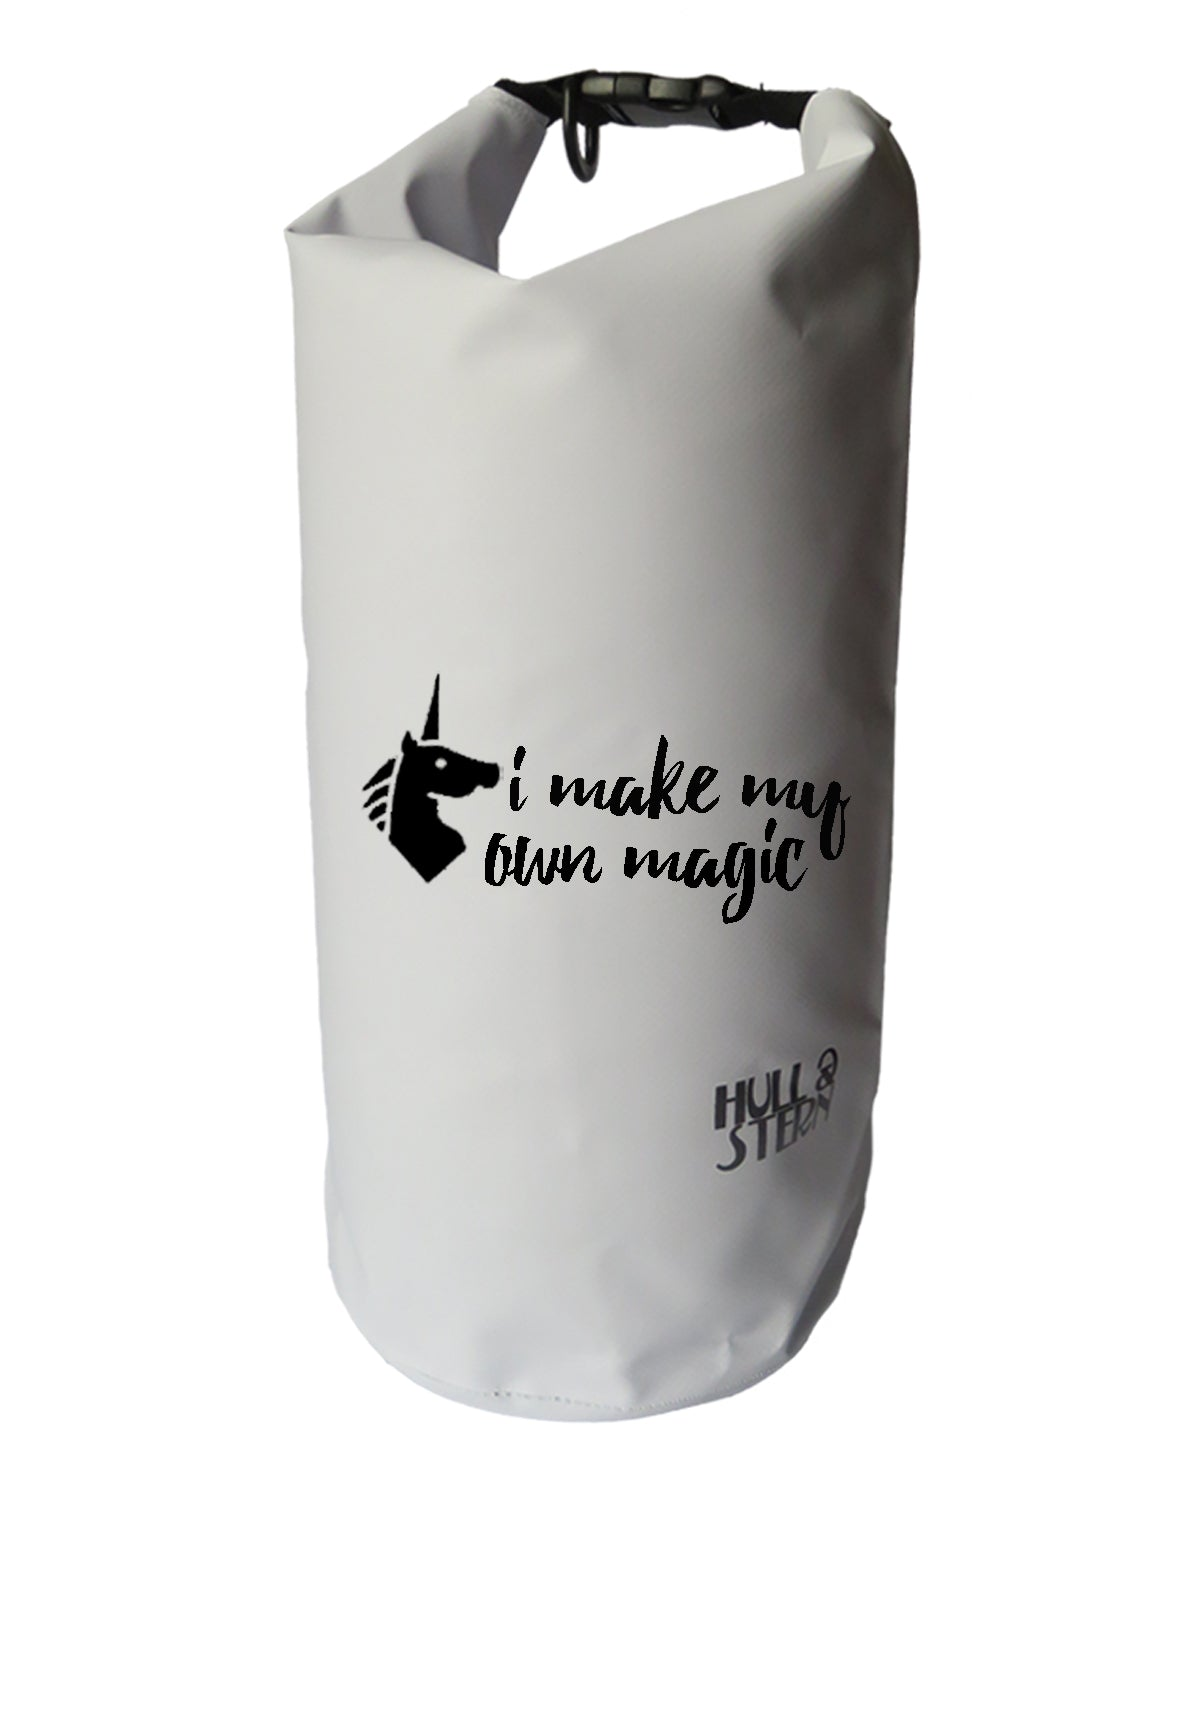 [CLEARANCE] LIMITED EDITION: Unicorn Magic Adventure Dry Bag Size 10L in North Star White